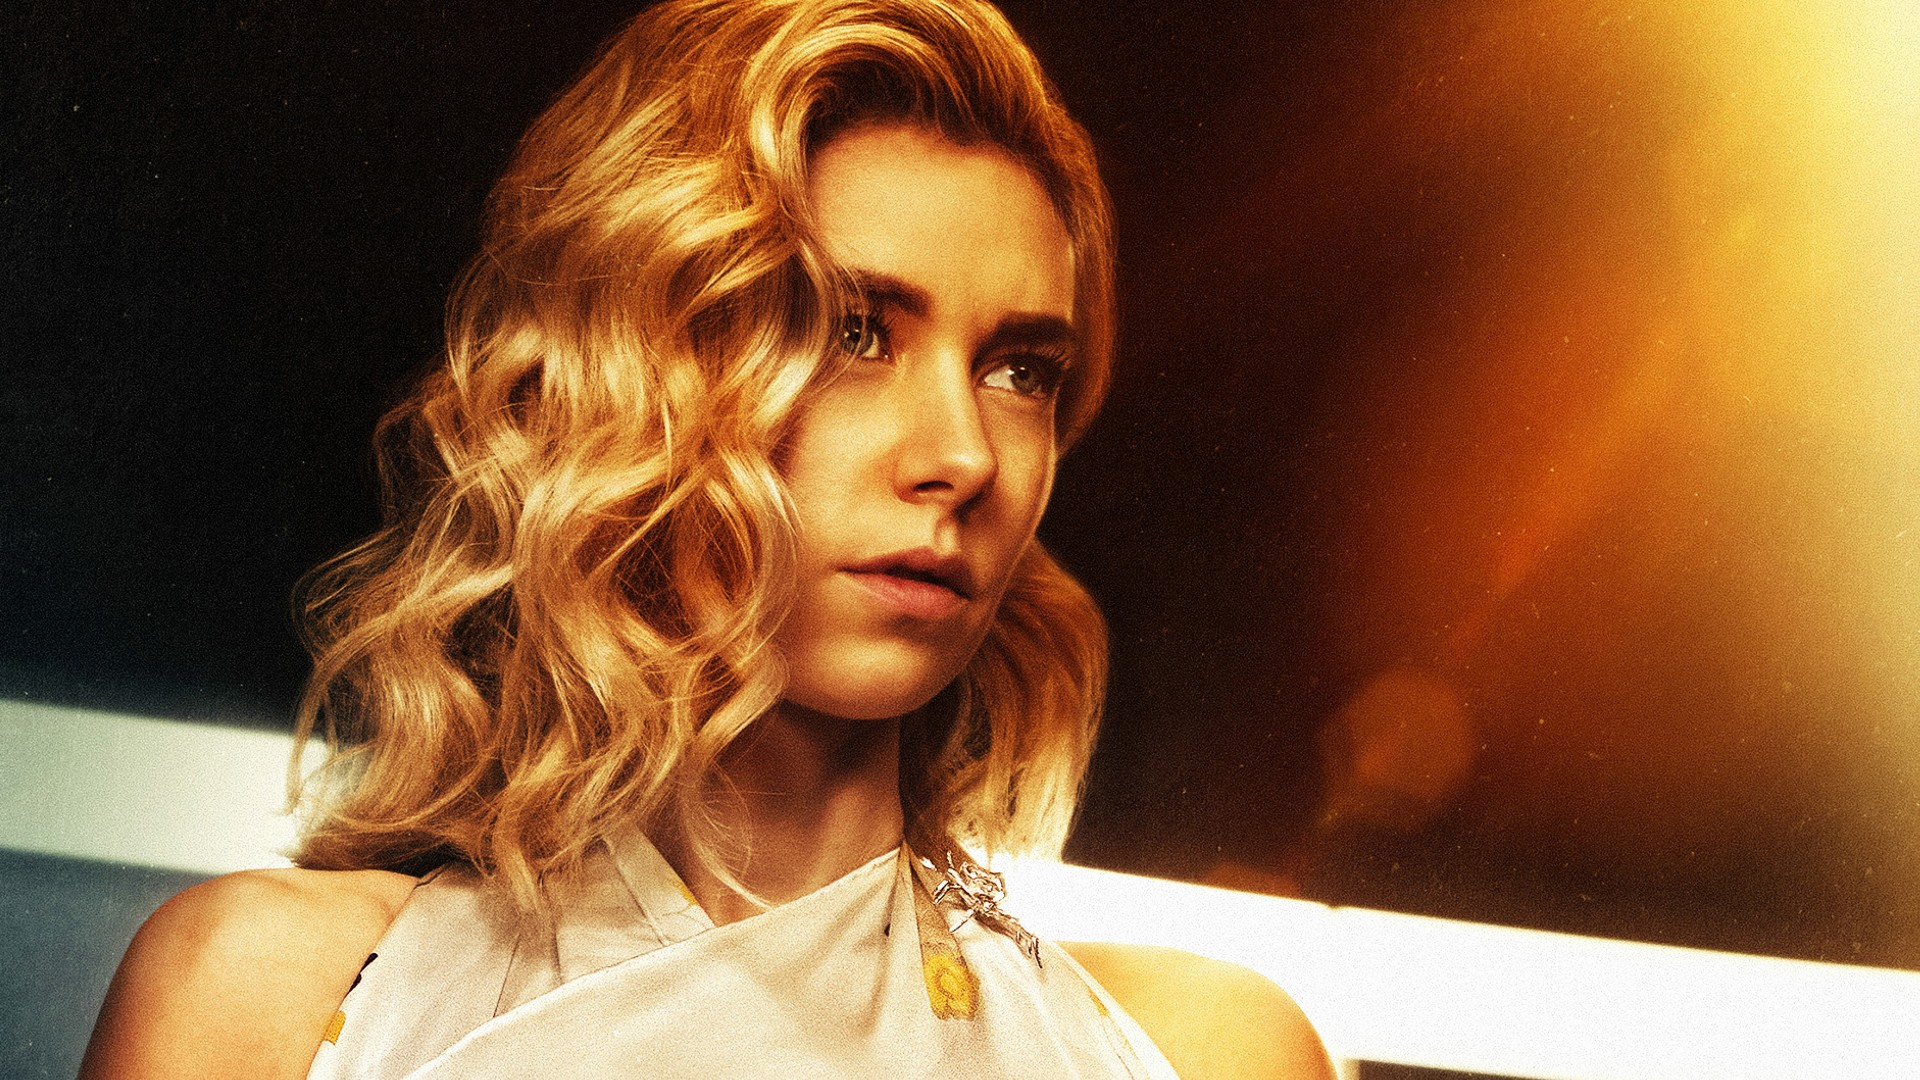 Mission Impossible Fallout Vanessa Kirby Photo 1920x1080